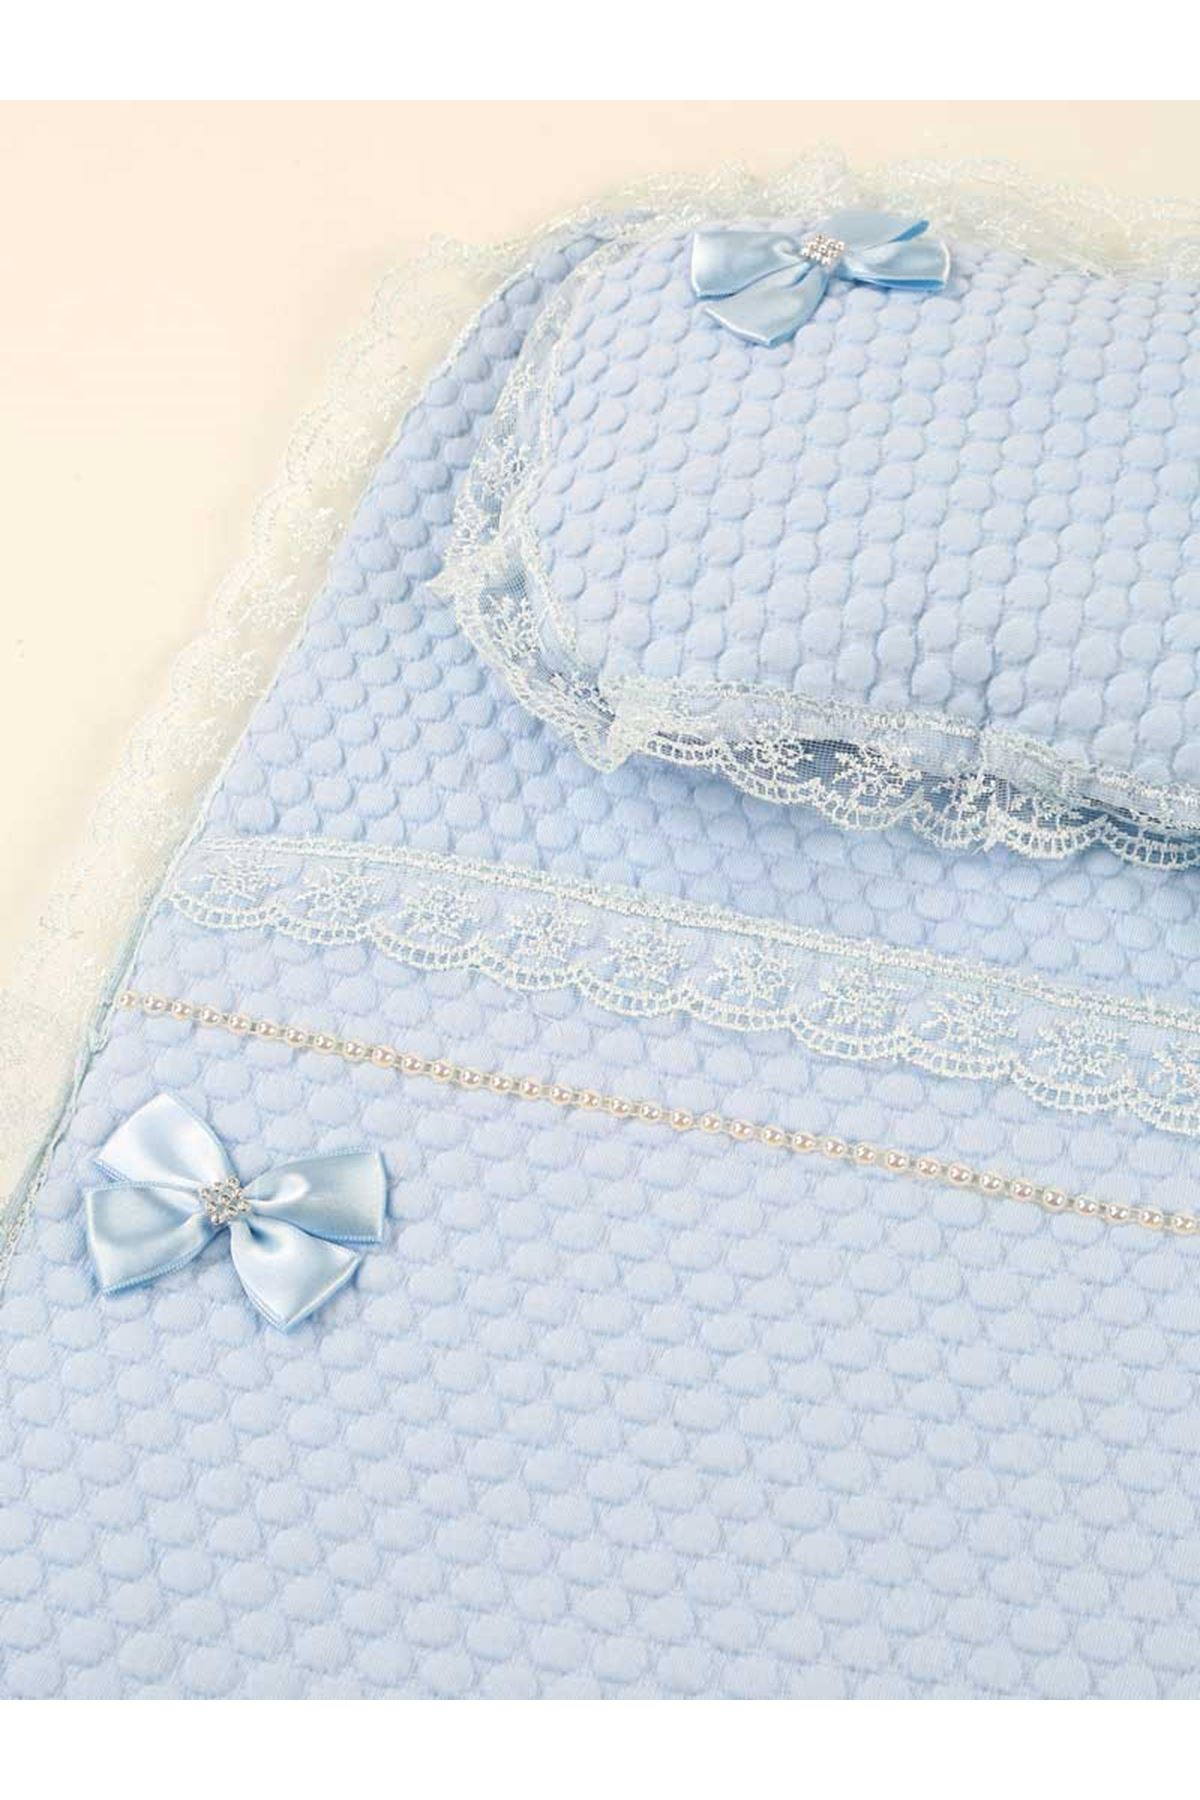 Blue Boys Baby White Swaddle Bottom Opening Set Newborn Cotton King Queen Boys Babies Male Clothes Comfortable Stroller Use View original title in English